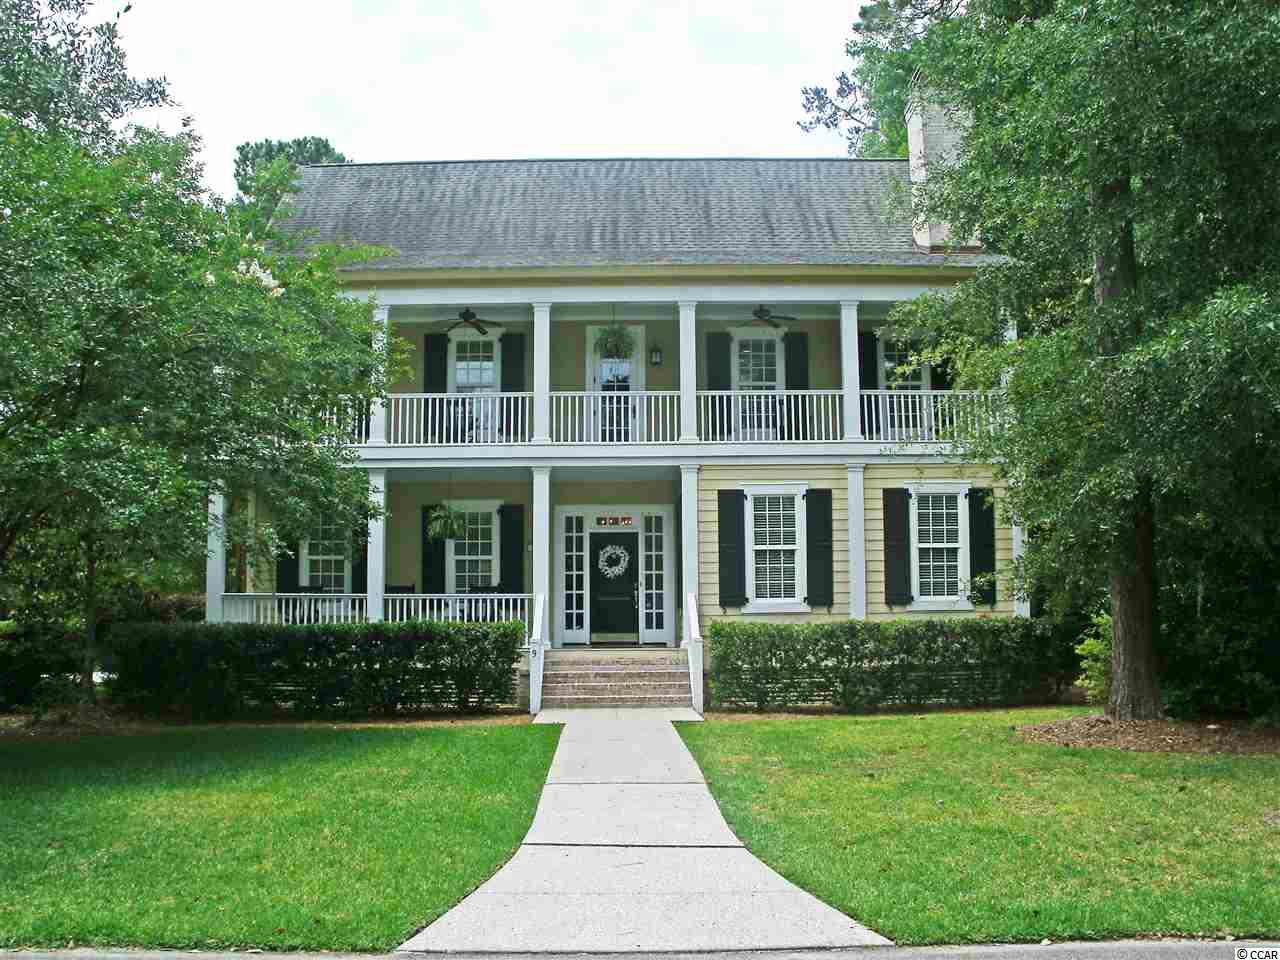 House in Pawleys Island South Carolina